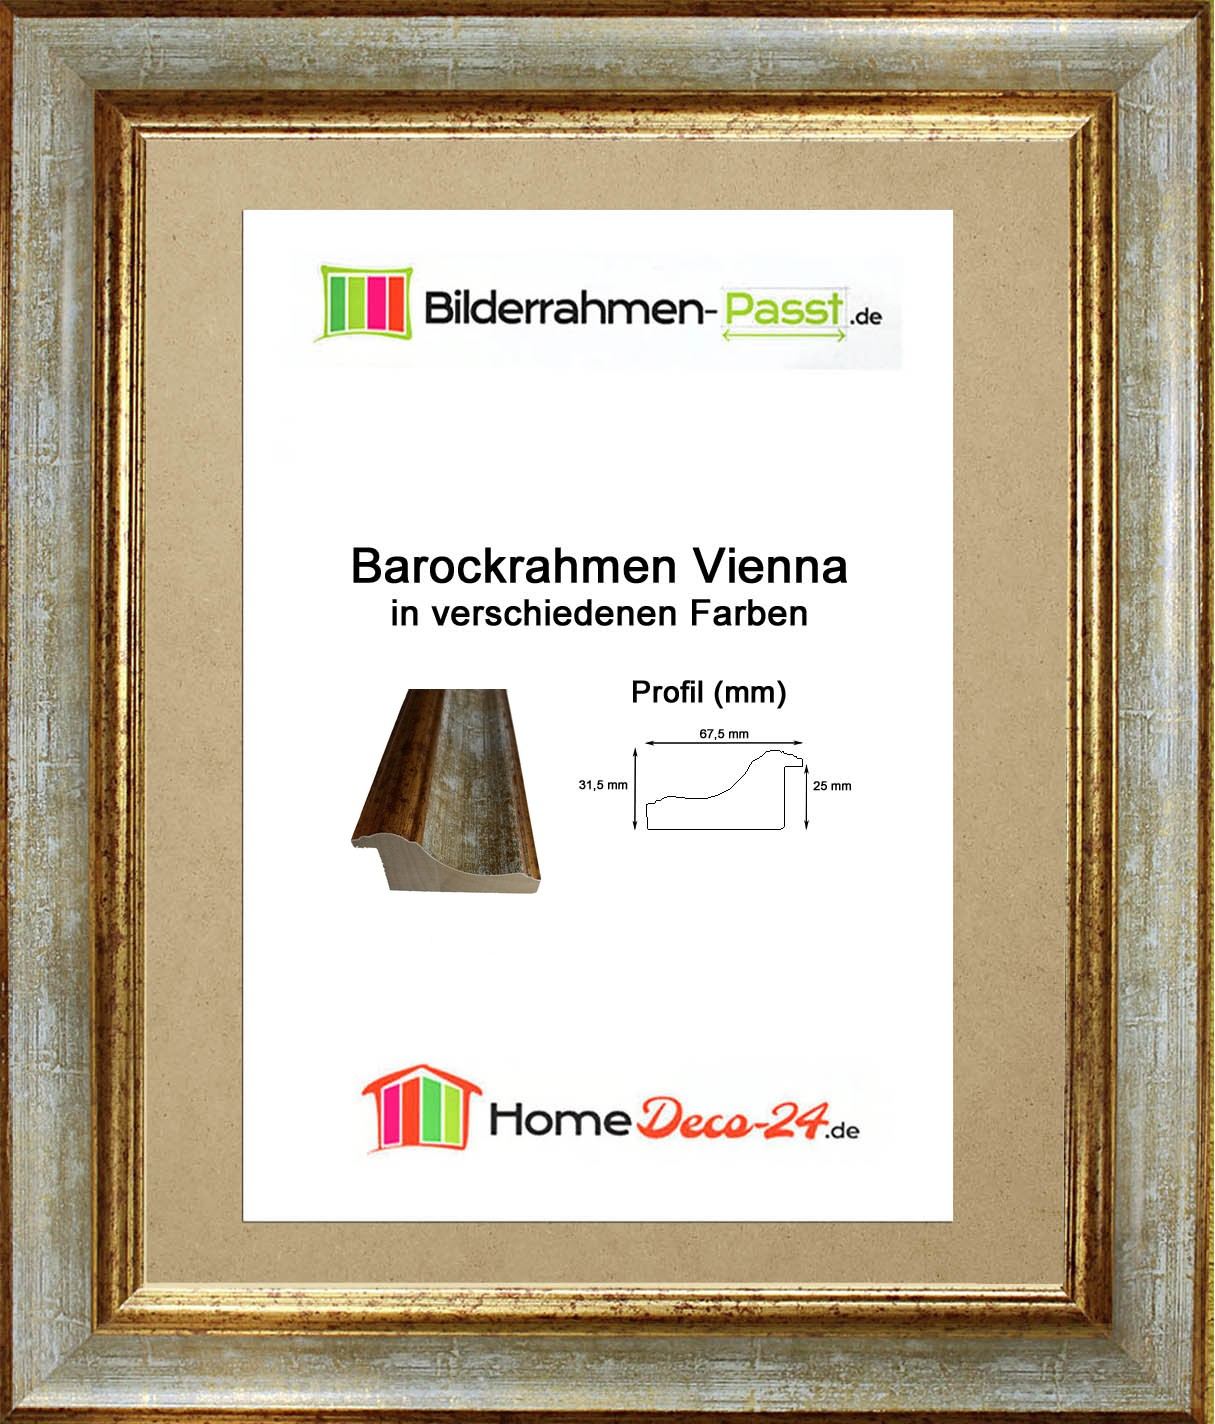 bilderrahmen vienna 60 x 90 cm barock prunk massivholz verglasung farbwahl. Black Bedroom Furniture Sets. Home Design Ideas